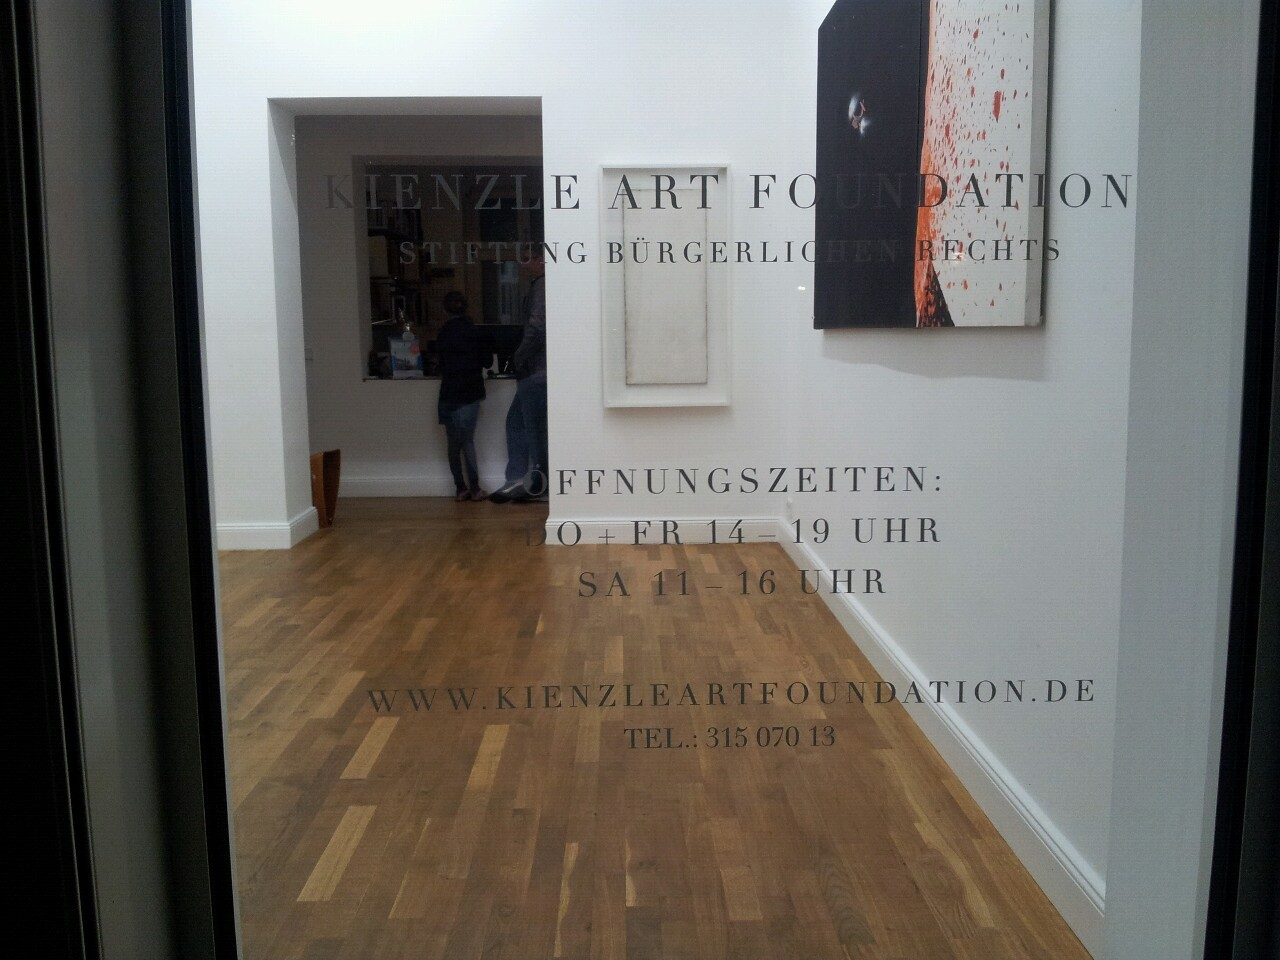 KIENZLE ART FUNDATION